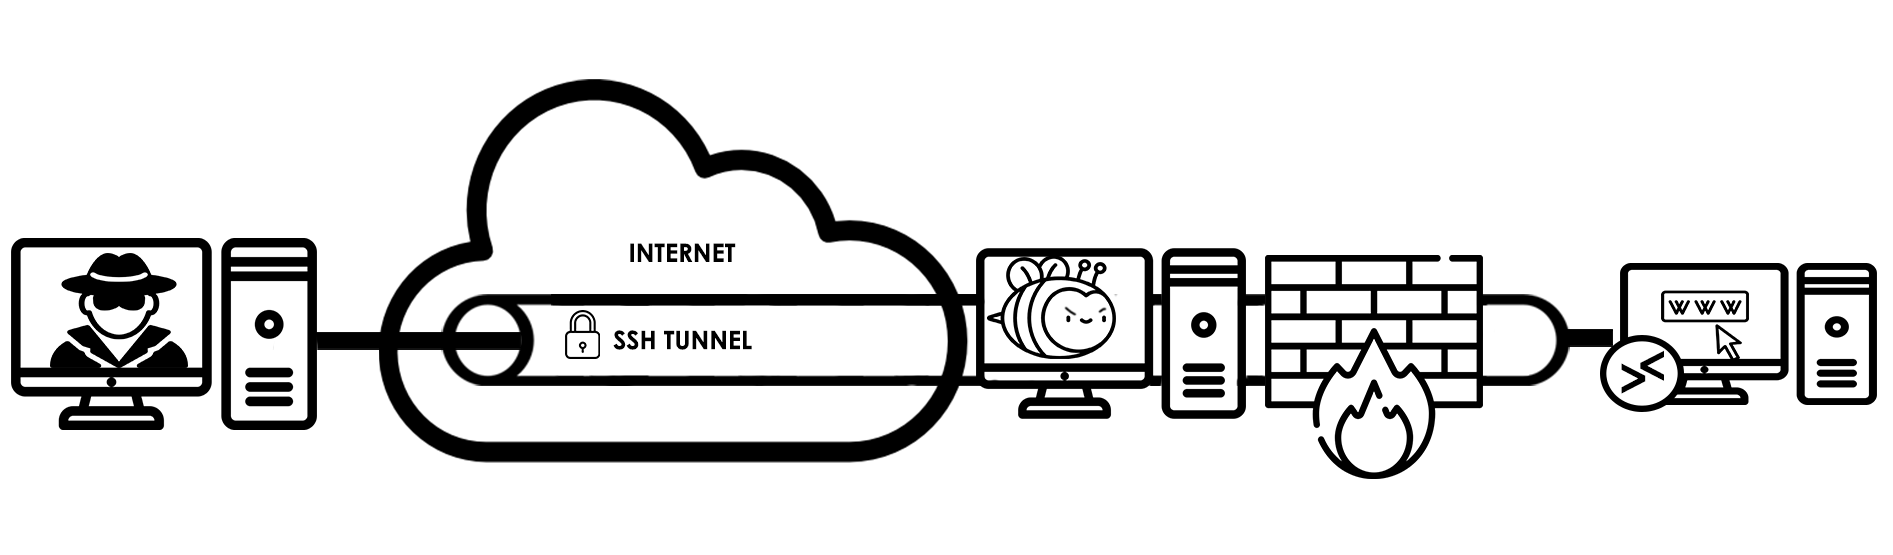 This shows how a threat actor from the xHunt campaign would use SSH tunnels to move laterally to other systems on the network, allowing access to internal systems that are not remotely accessible from the internet through the internet accessible server hosting the BumbleBee webshell.